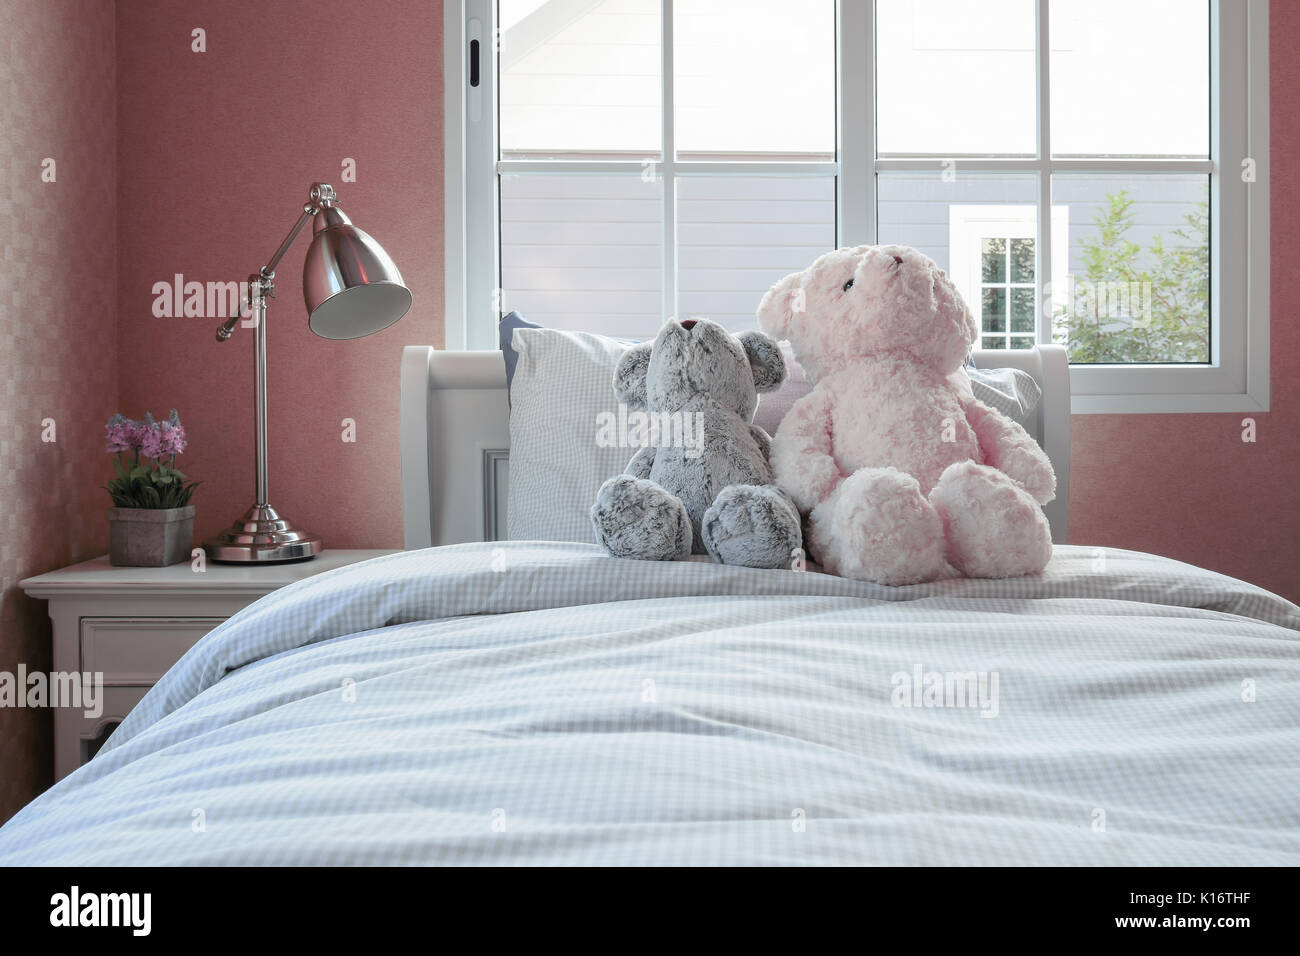 Kids Room With Dolls And Pillows On Bed And Bedside Table Lamp Stock